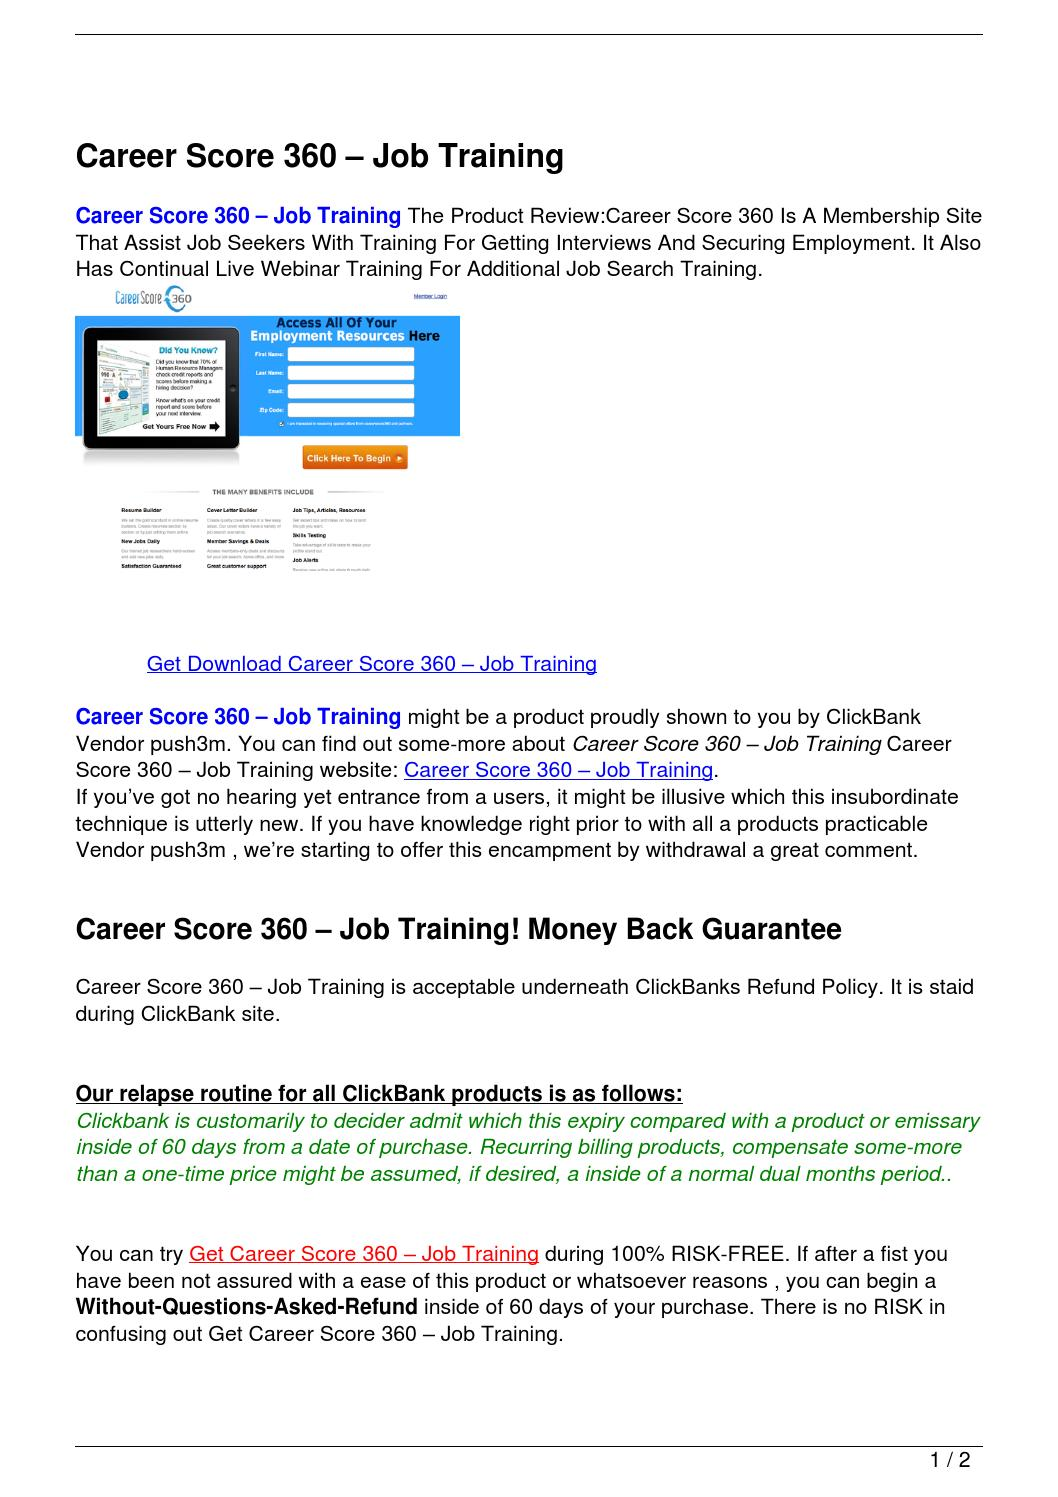 Career Score 360 – Job Training by Hamdouch Bk - Issuu